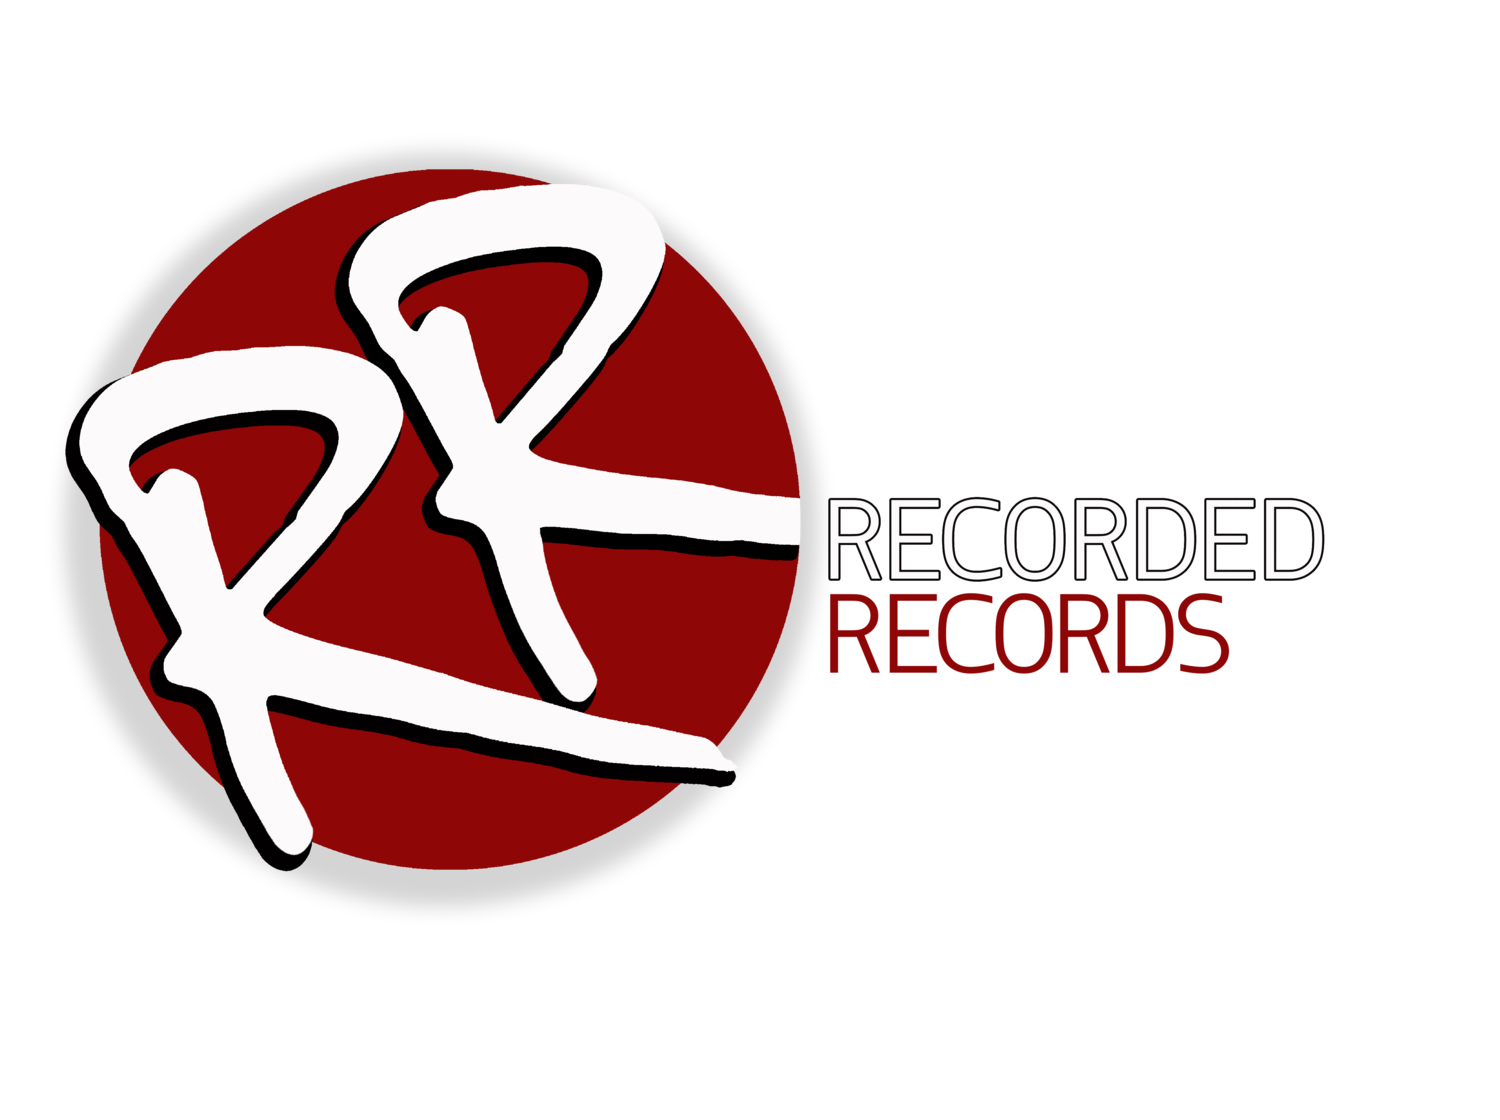 Recorded Records